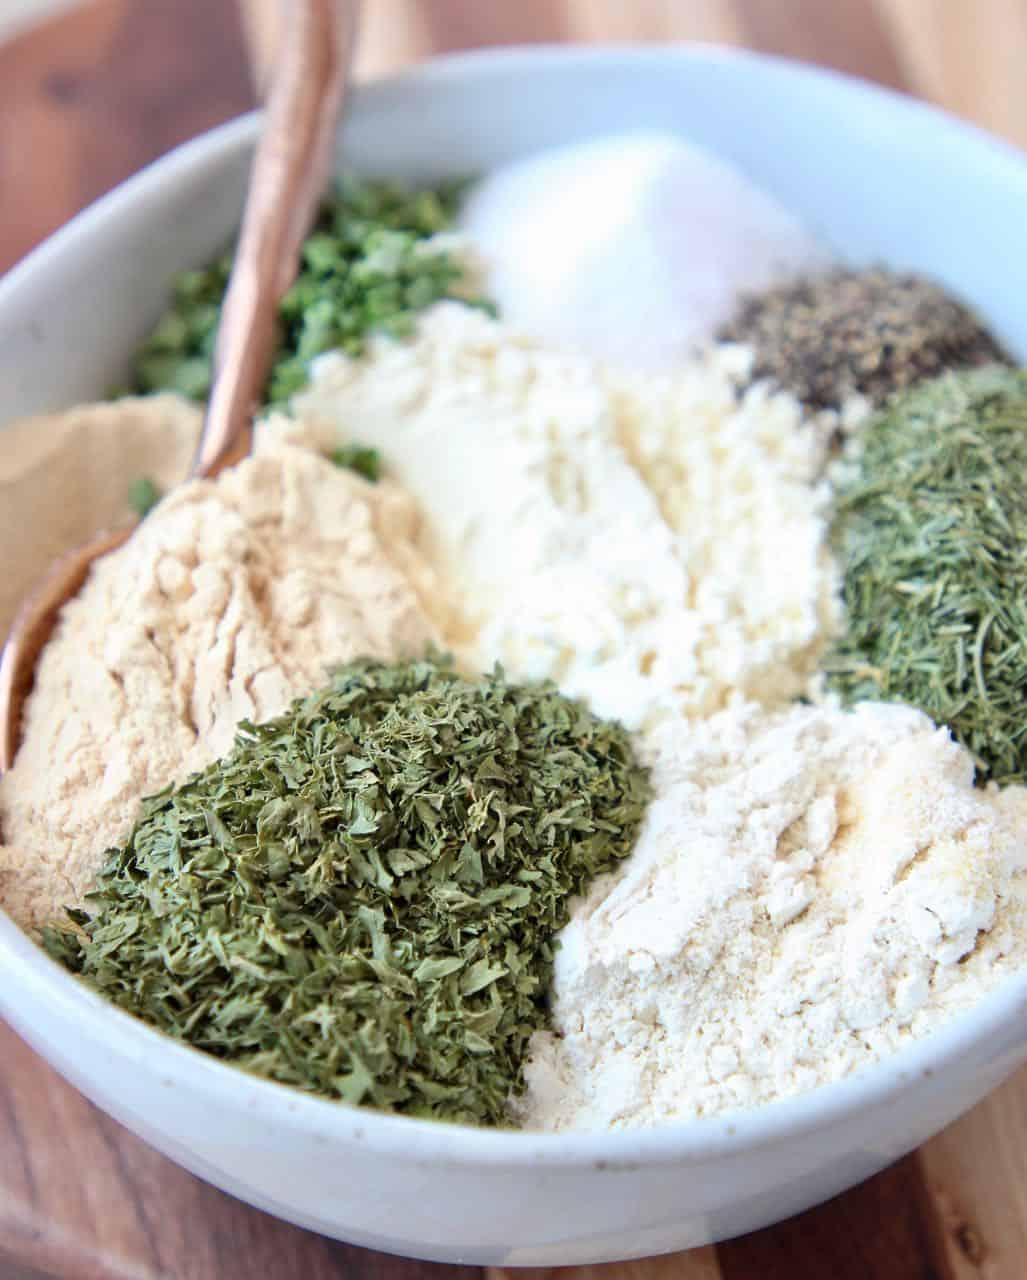 Homemade ranch seasoning mix ingredients separated in a bowl